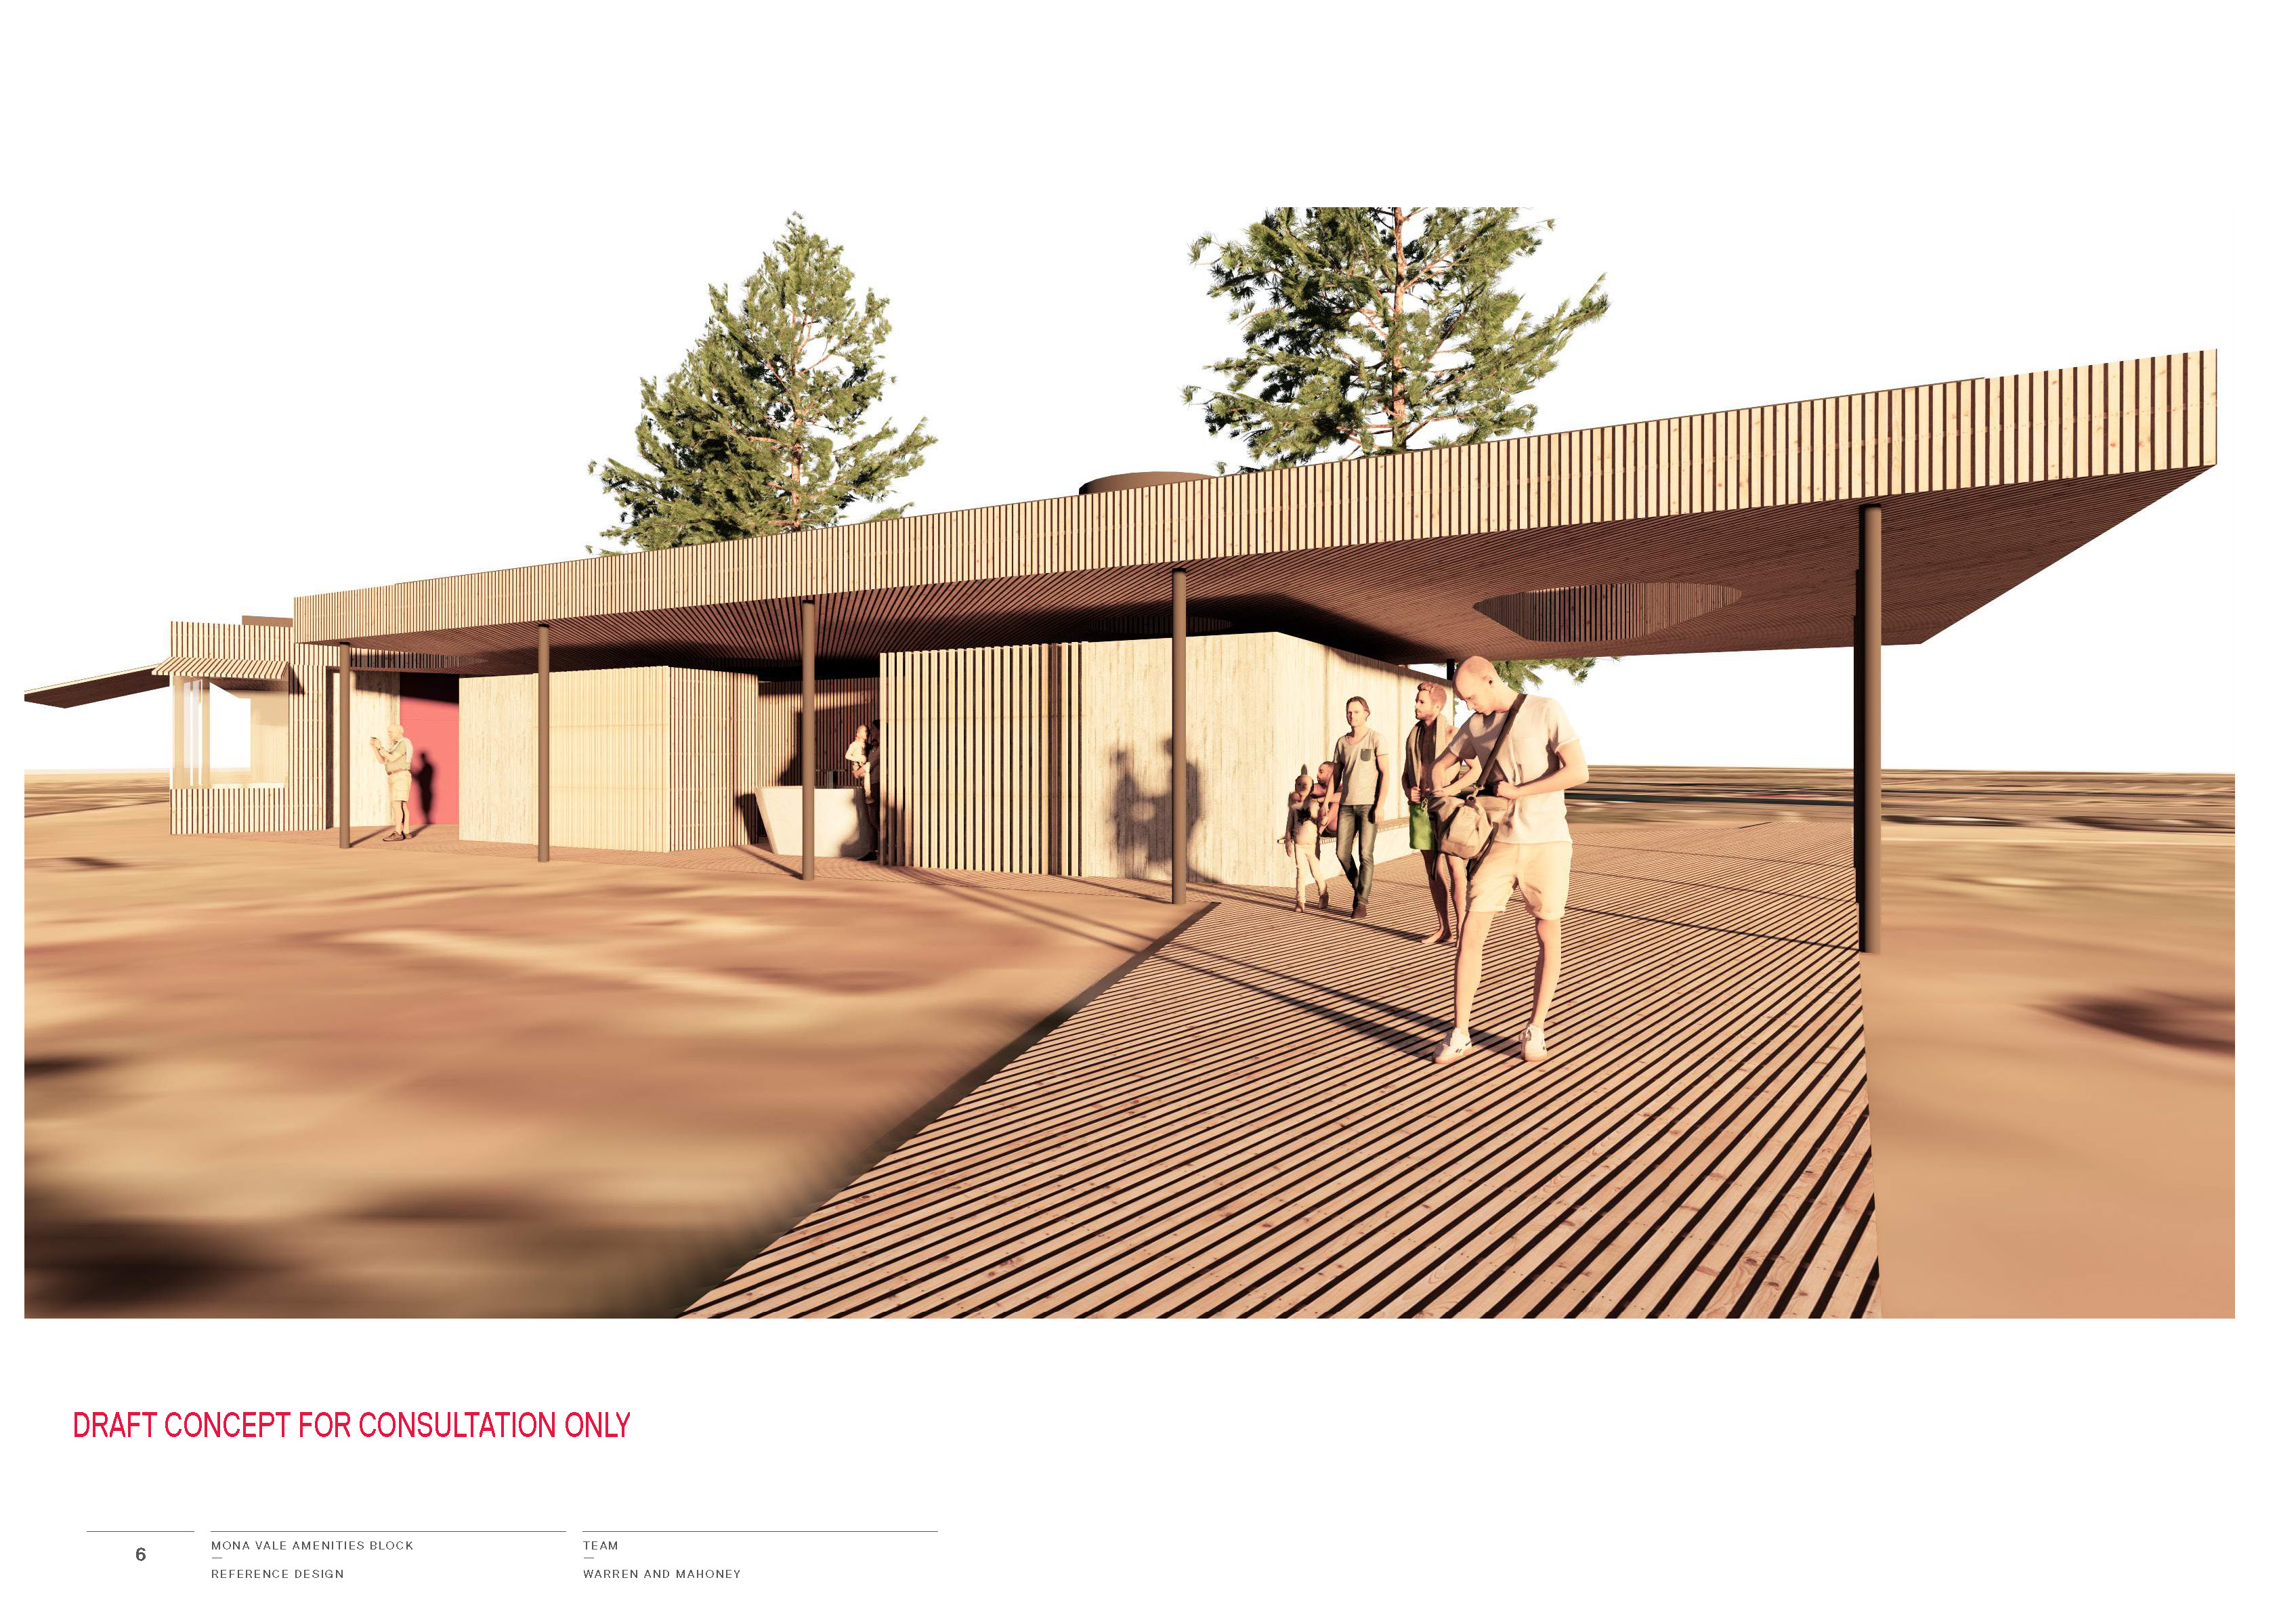 Mona Vale Beach Amenities Concept view from east looking west